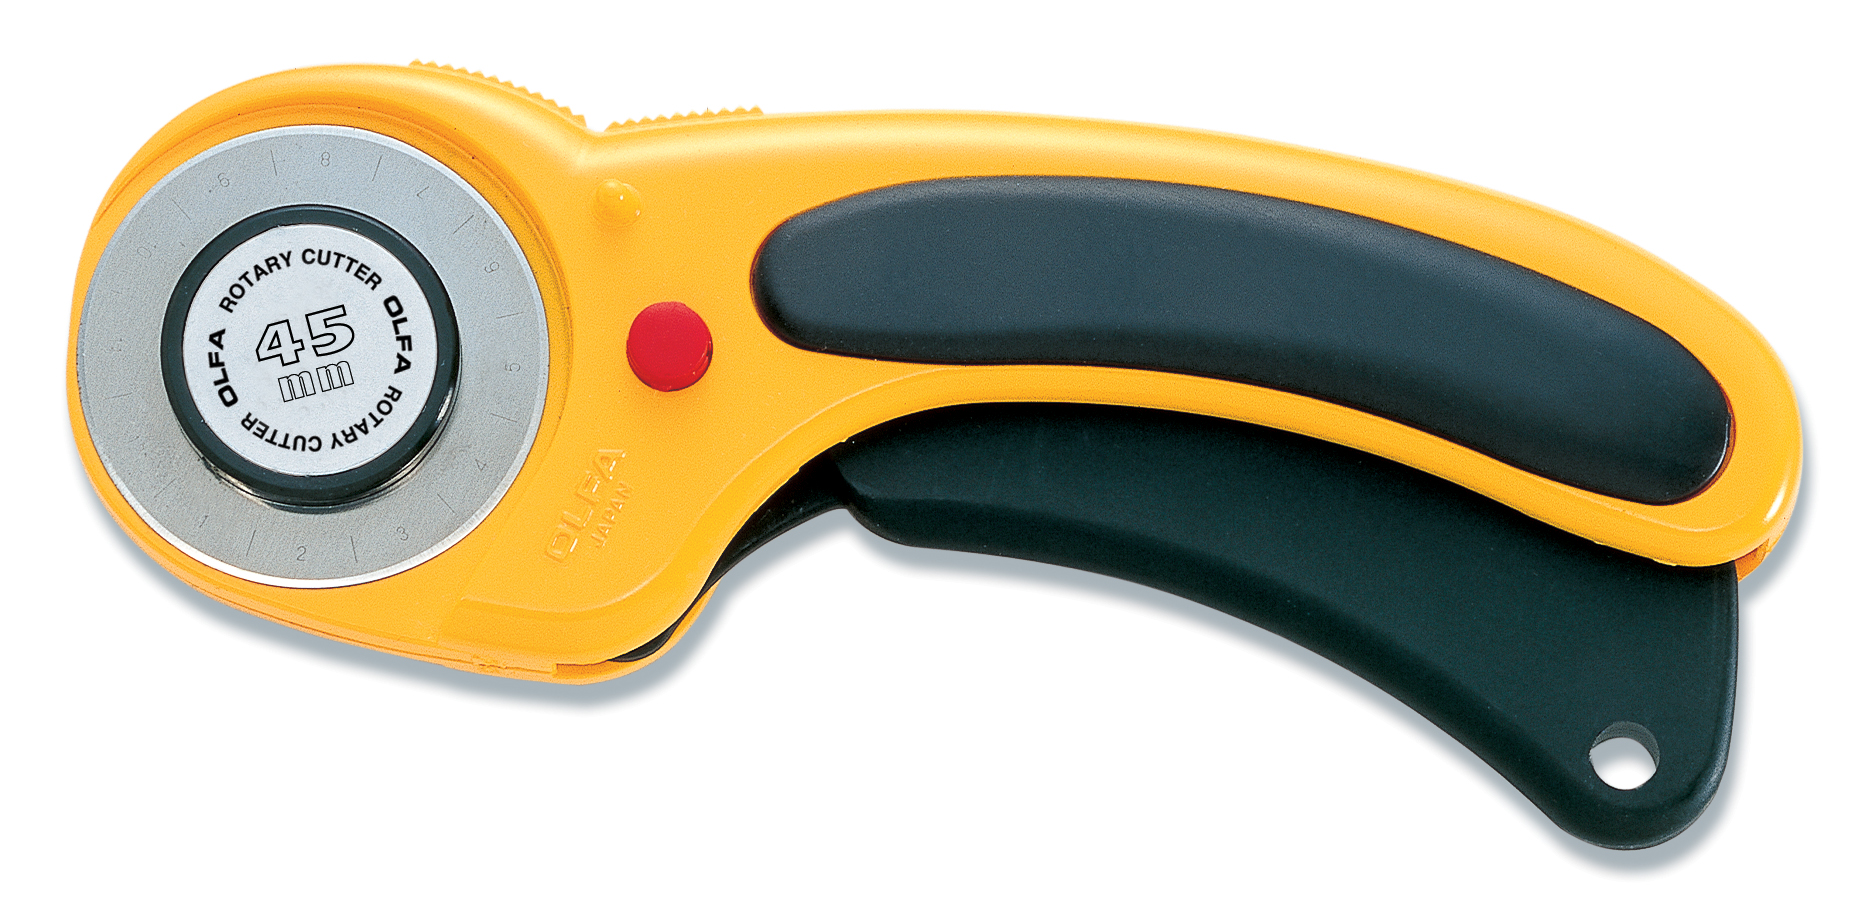 OLFA 45mm Ergonomic Rotary Cutter (RTY-2/DX)